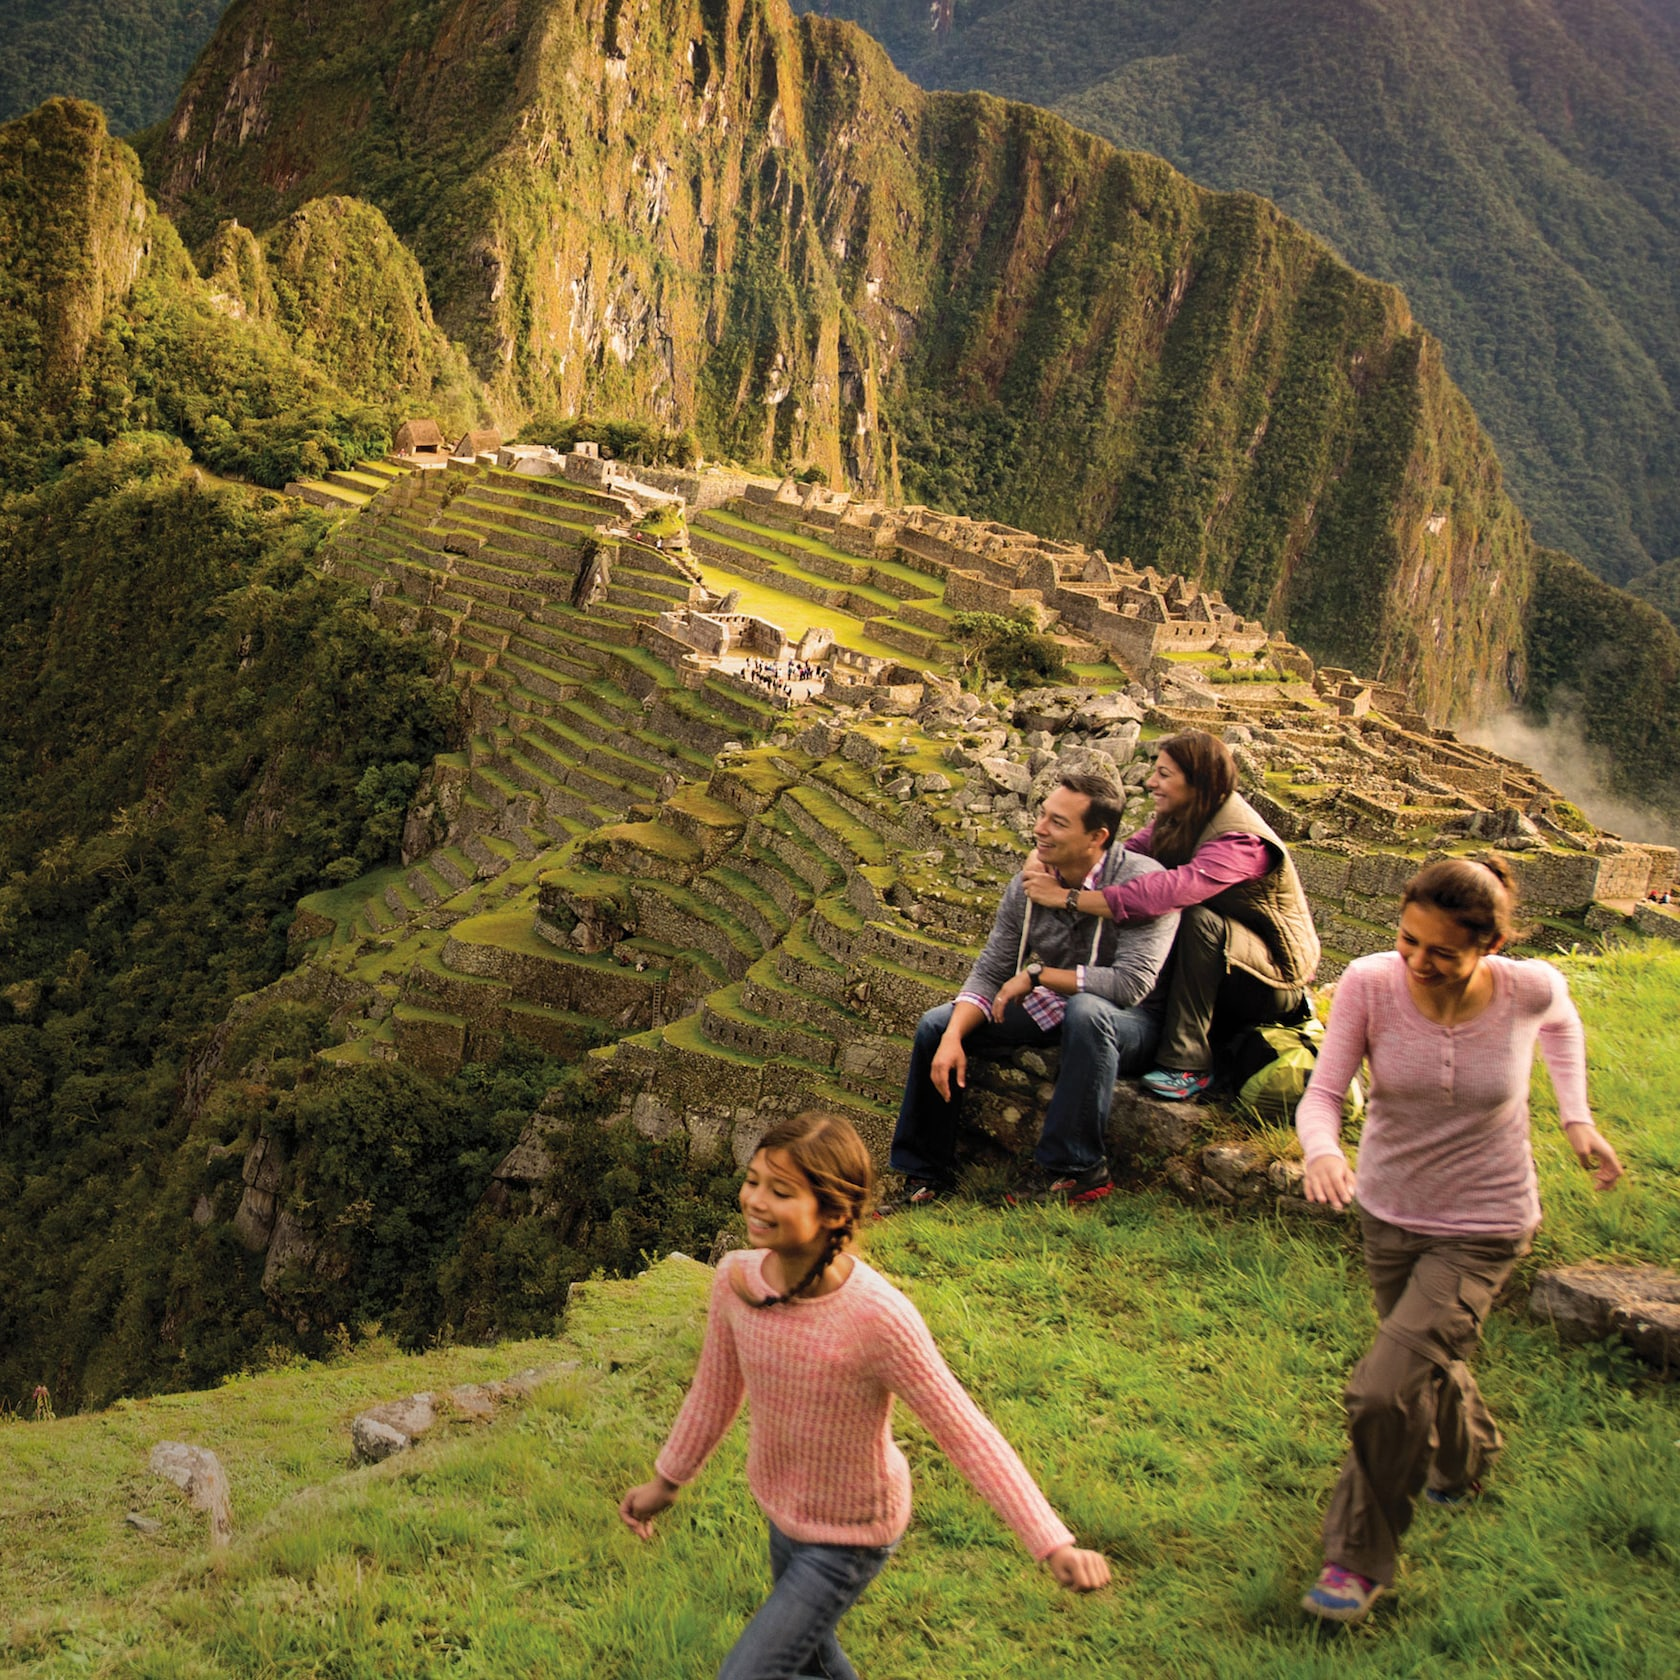 A family views Machu Picchu from a nearby mountaintop